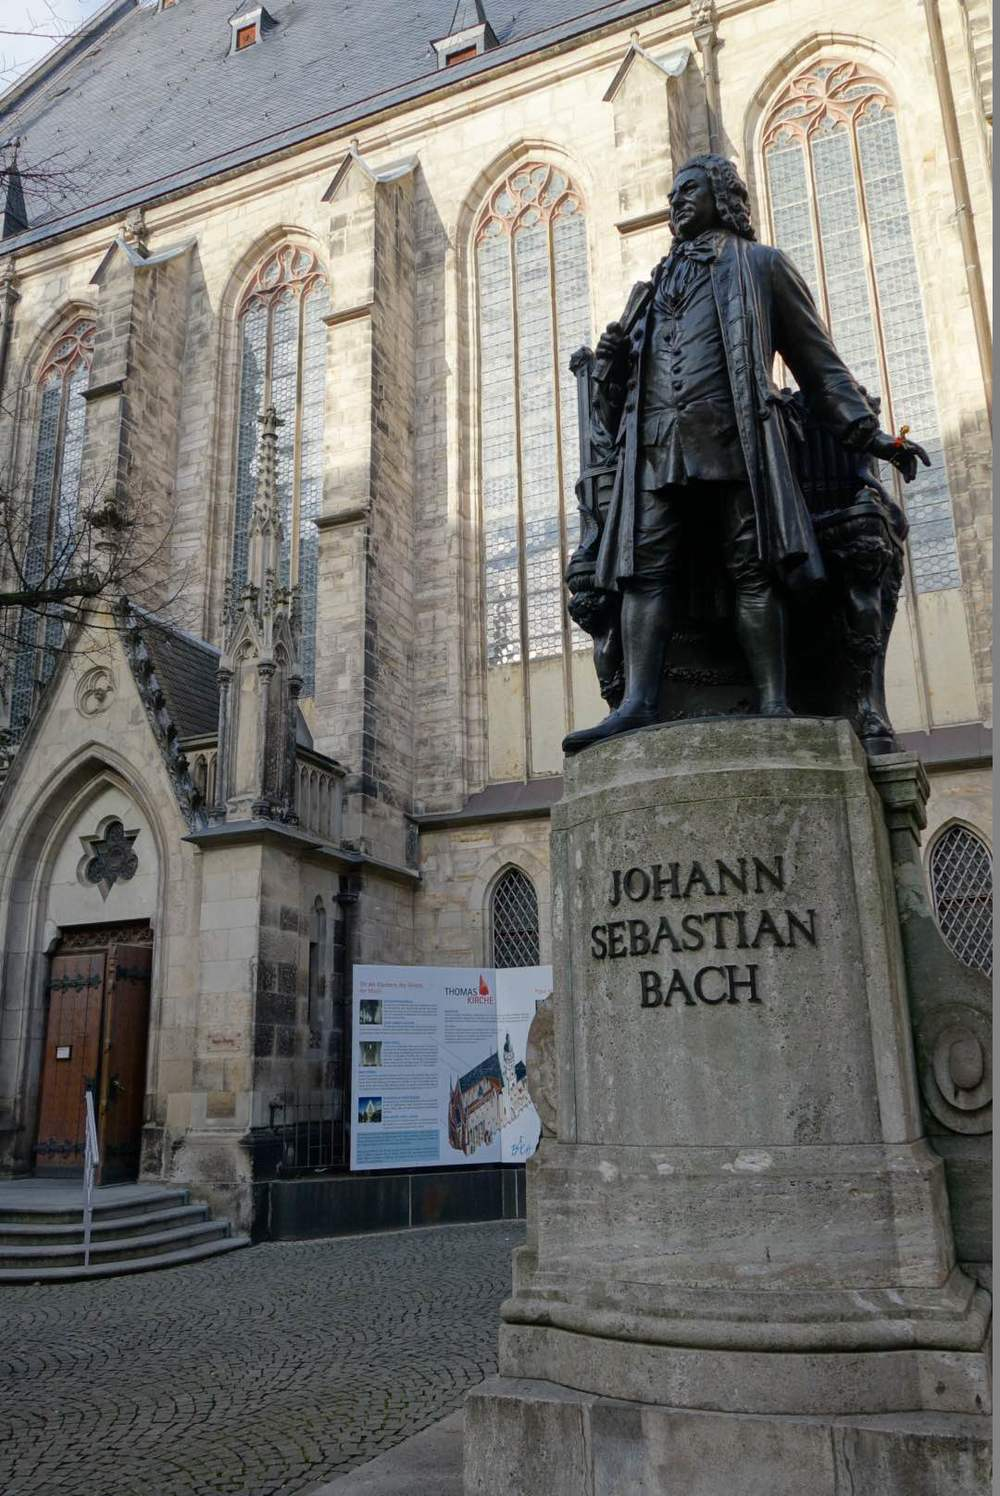 Johann Sebastian Bach statue outside the St. Thomas Church.